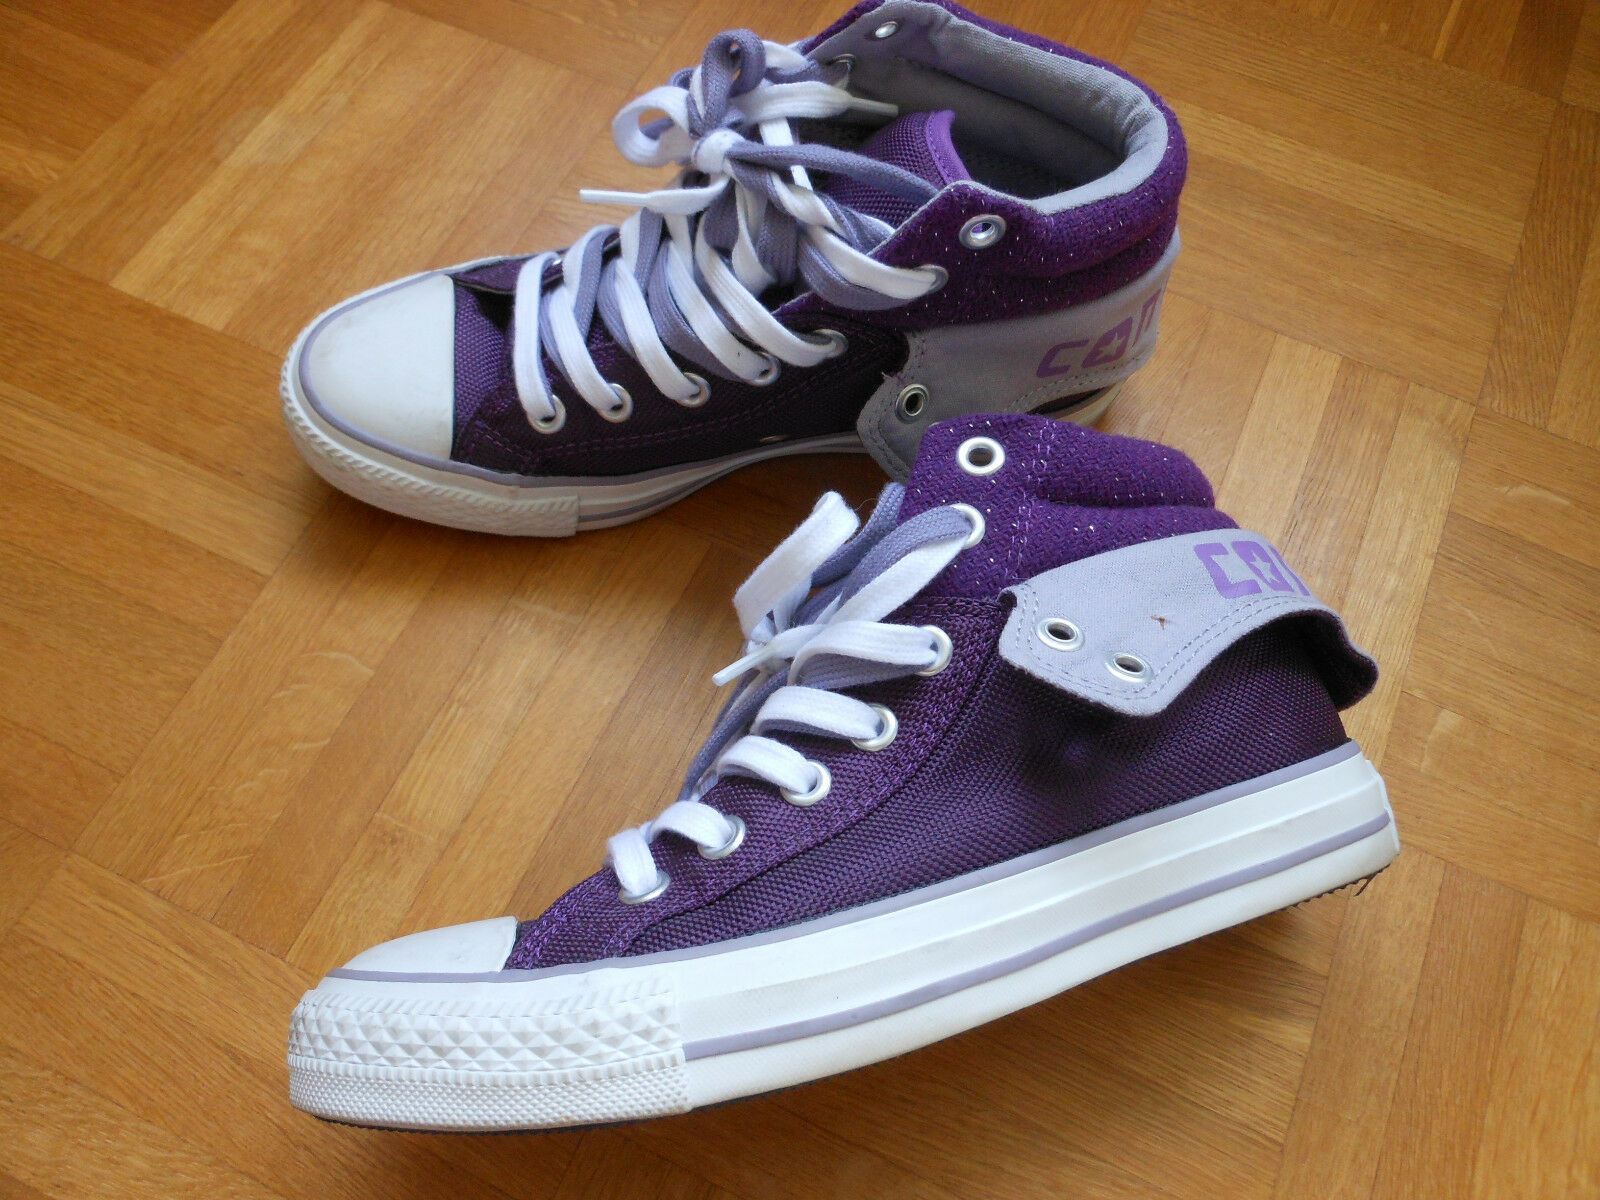 Tolle Tolle Tolle Schuhe CONVERSE  ALL Star, Modell aus USA  Gr. 37,5 ,  US 7  wie NEU 07b7c8